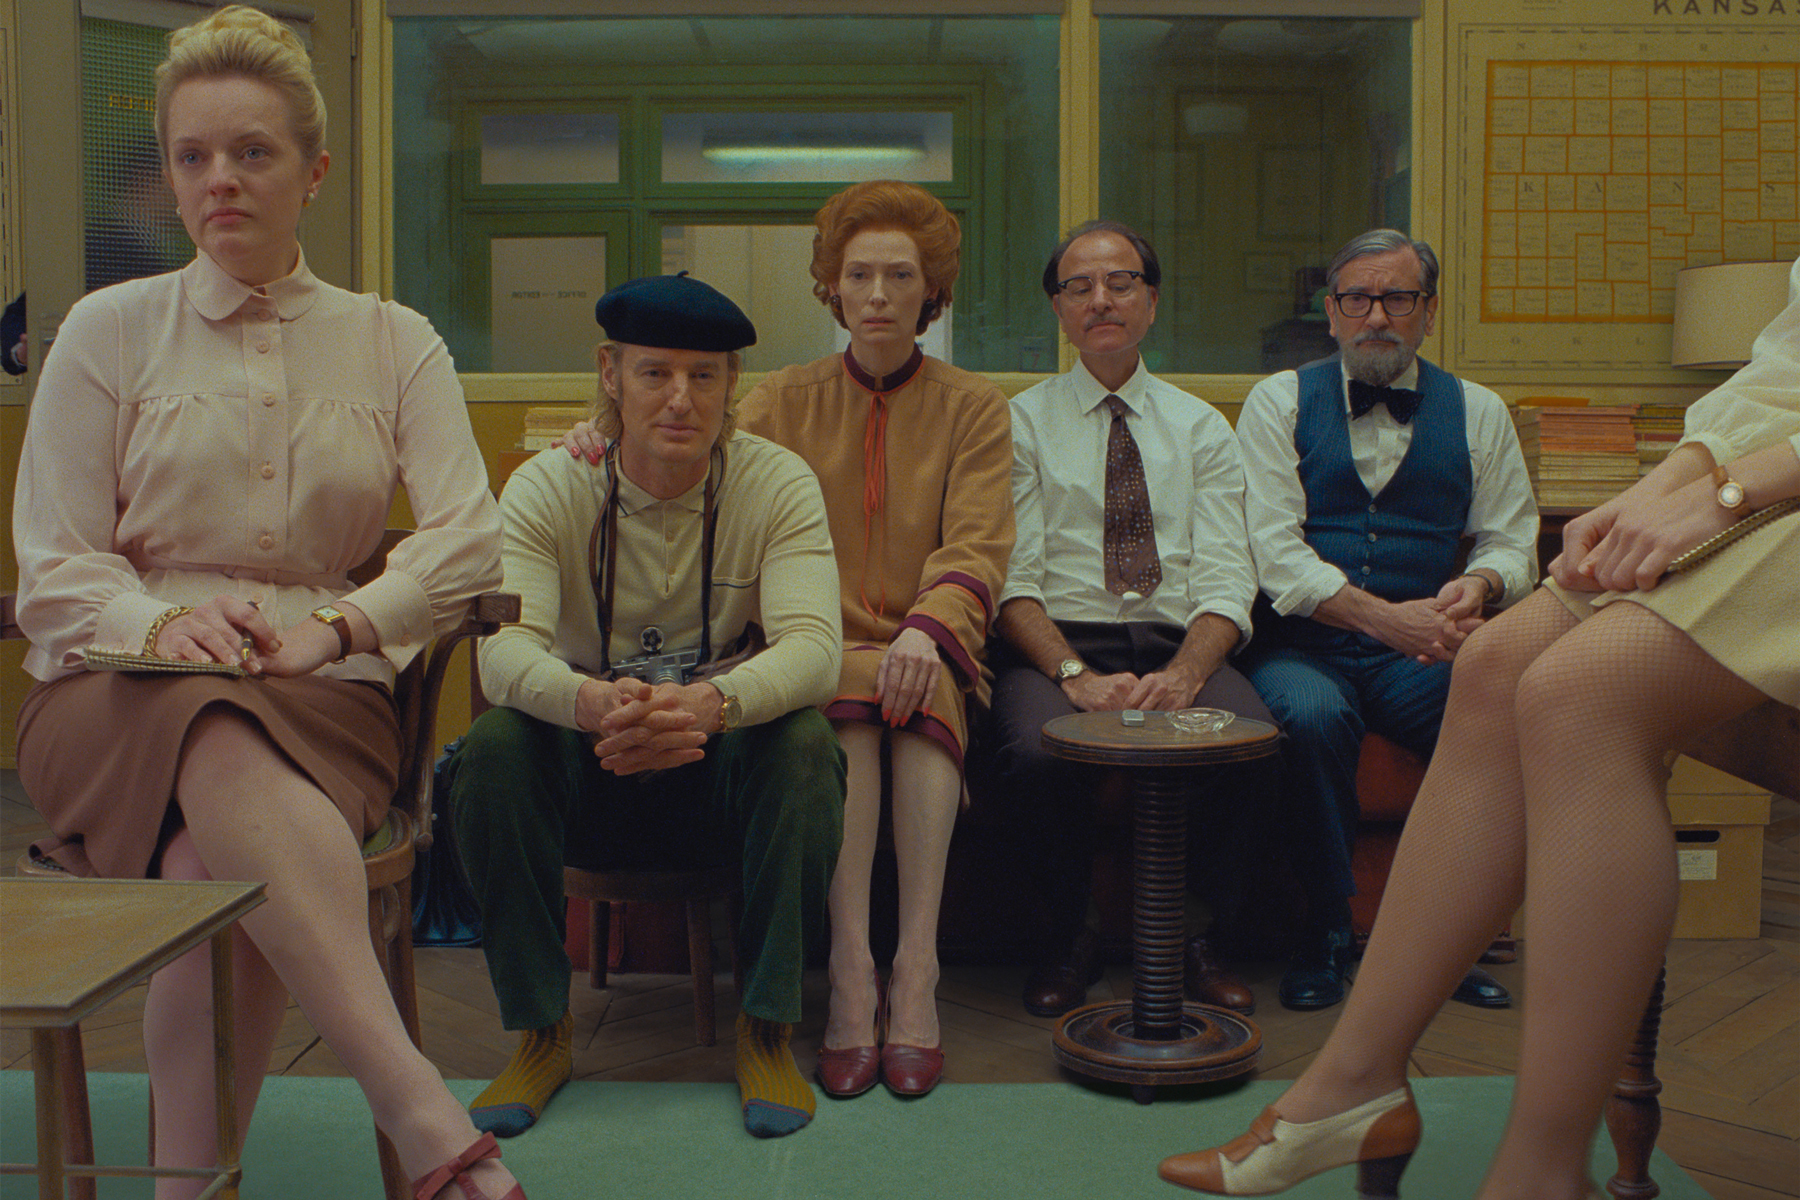 rollingstone.com - K. Austin Collins - The French Dispatch' Is the Most Wes Anderson-y Wes Anderson Movie of All Time